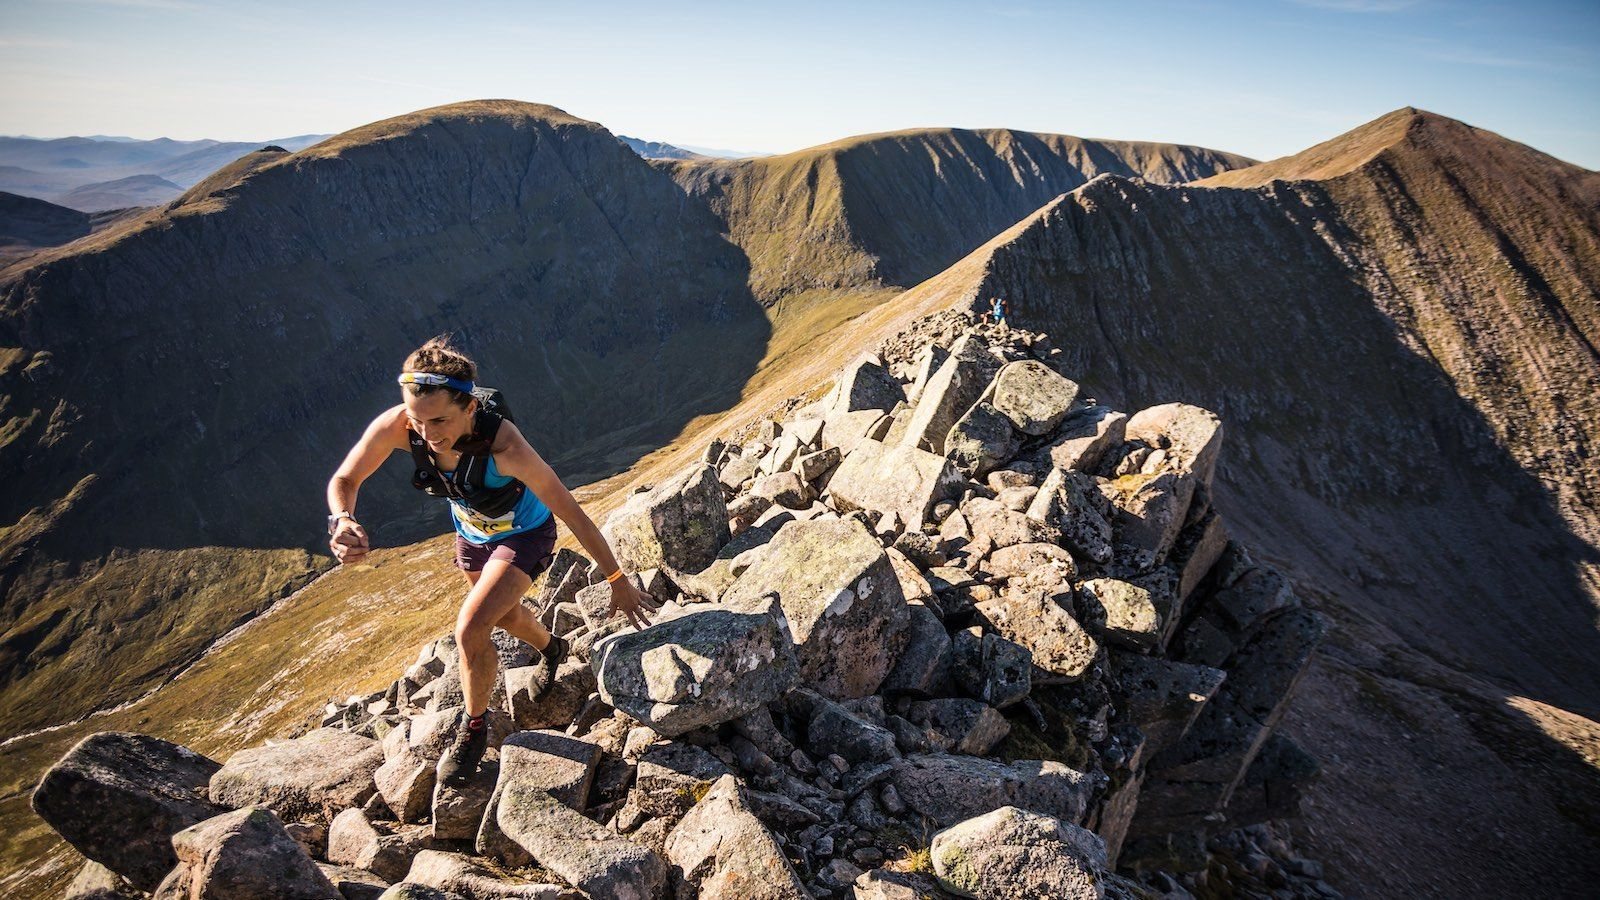 Salomon Ben Nevis Ultra - First Female - Katie Kaars Sijpesteijn - Carn Mor Dearg Arete - Copyright No Limits Photography web